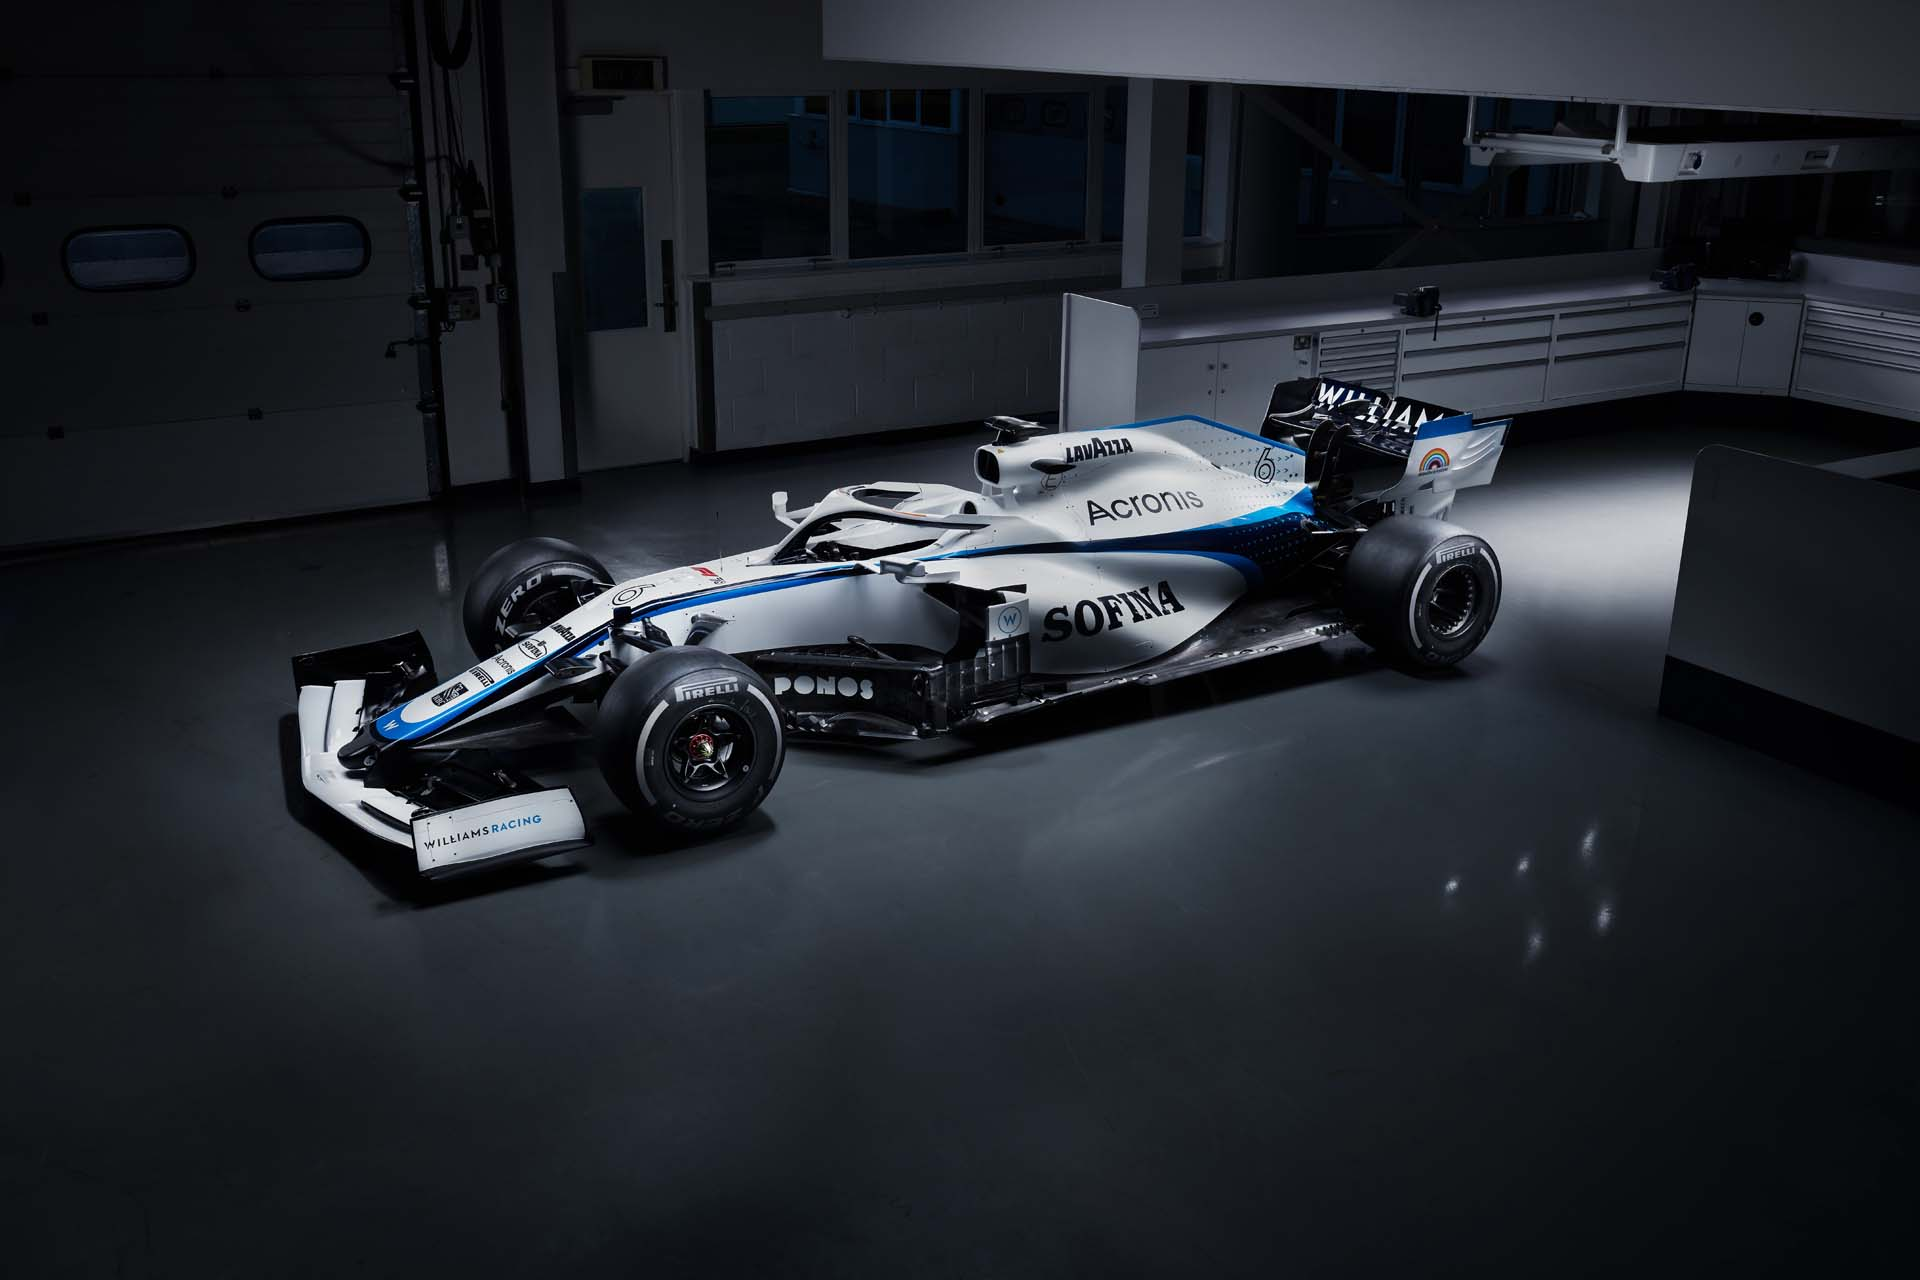 Williams Racing 2020 Livery